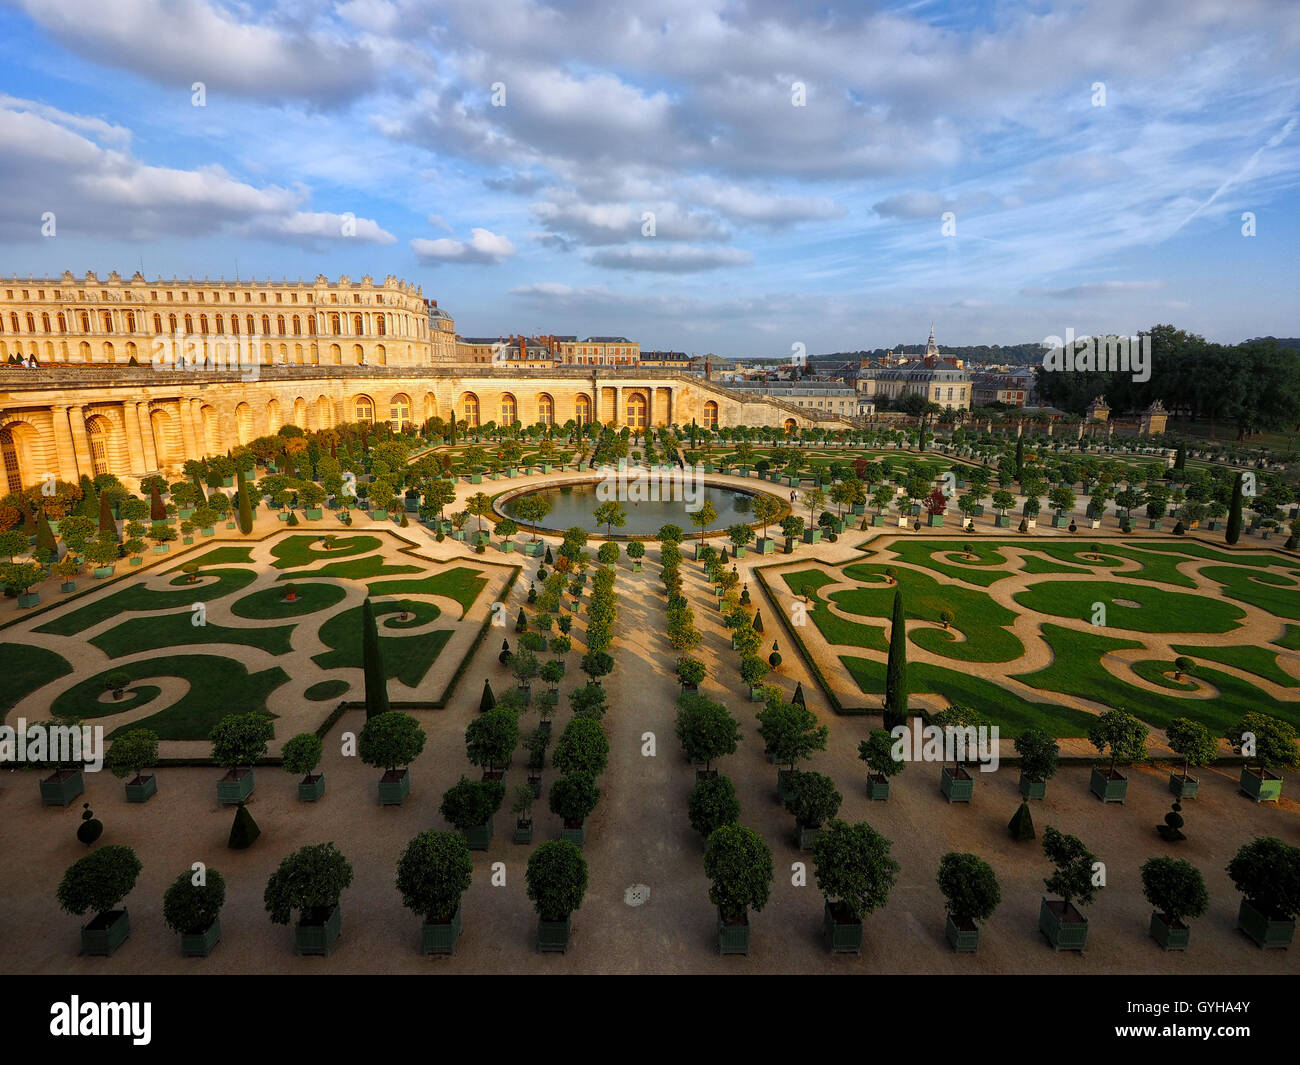 Overlooking L'Orangerie Palace Gardens, Palace of Versailles, France - Stock Image